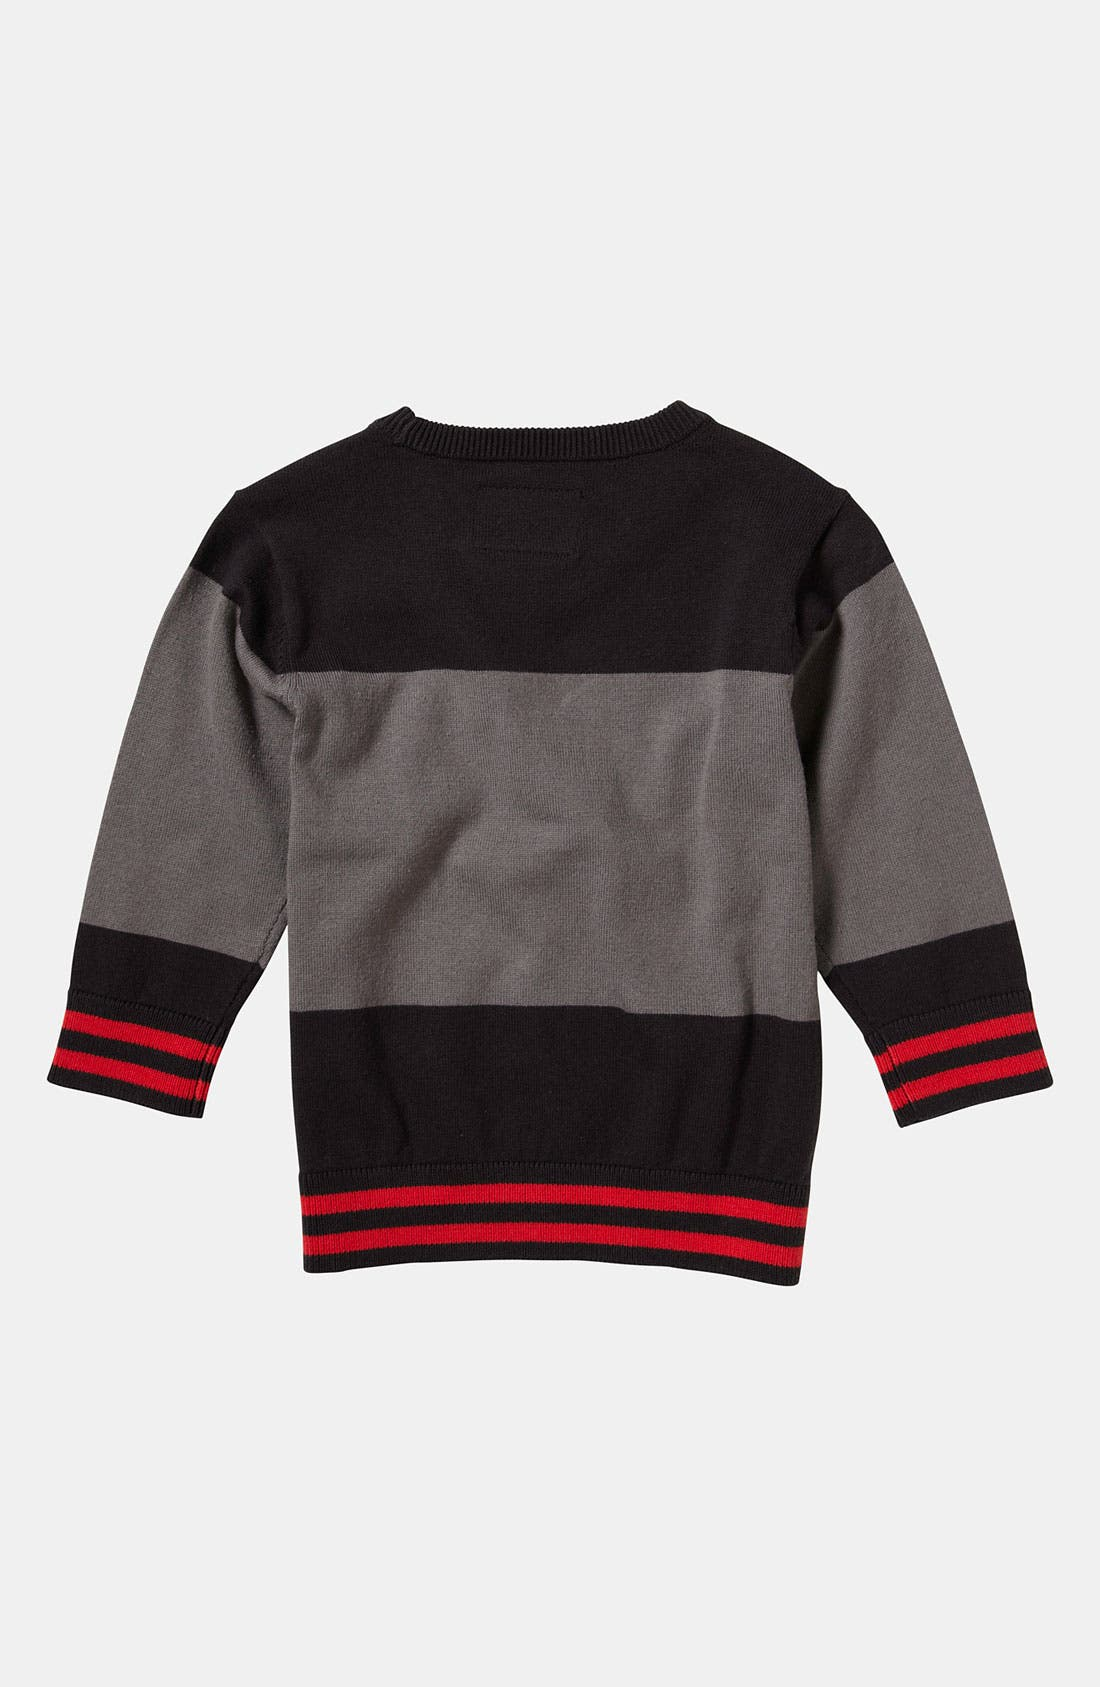 Alternate Image 2  - Quiksilver 'Wild Card' Sweater (Toddler)